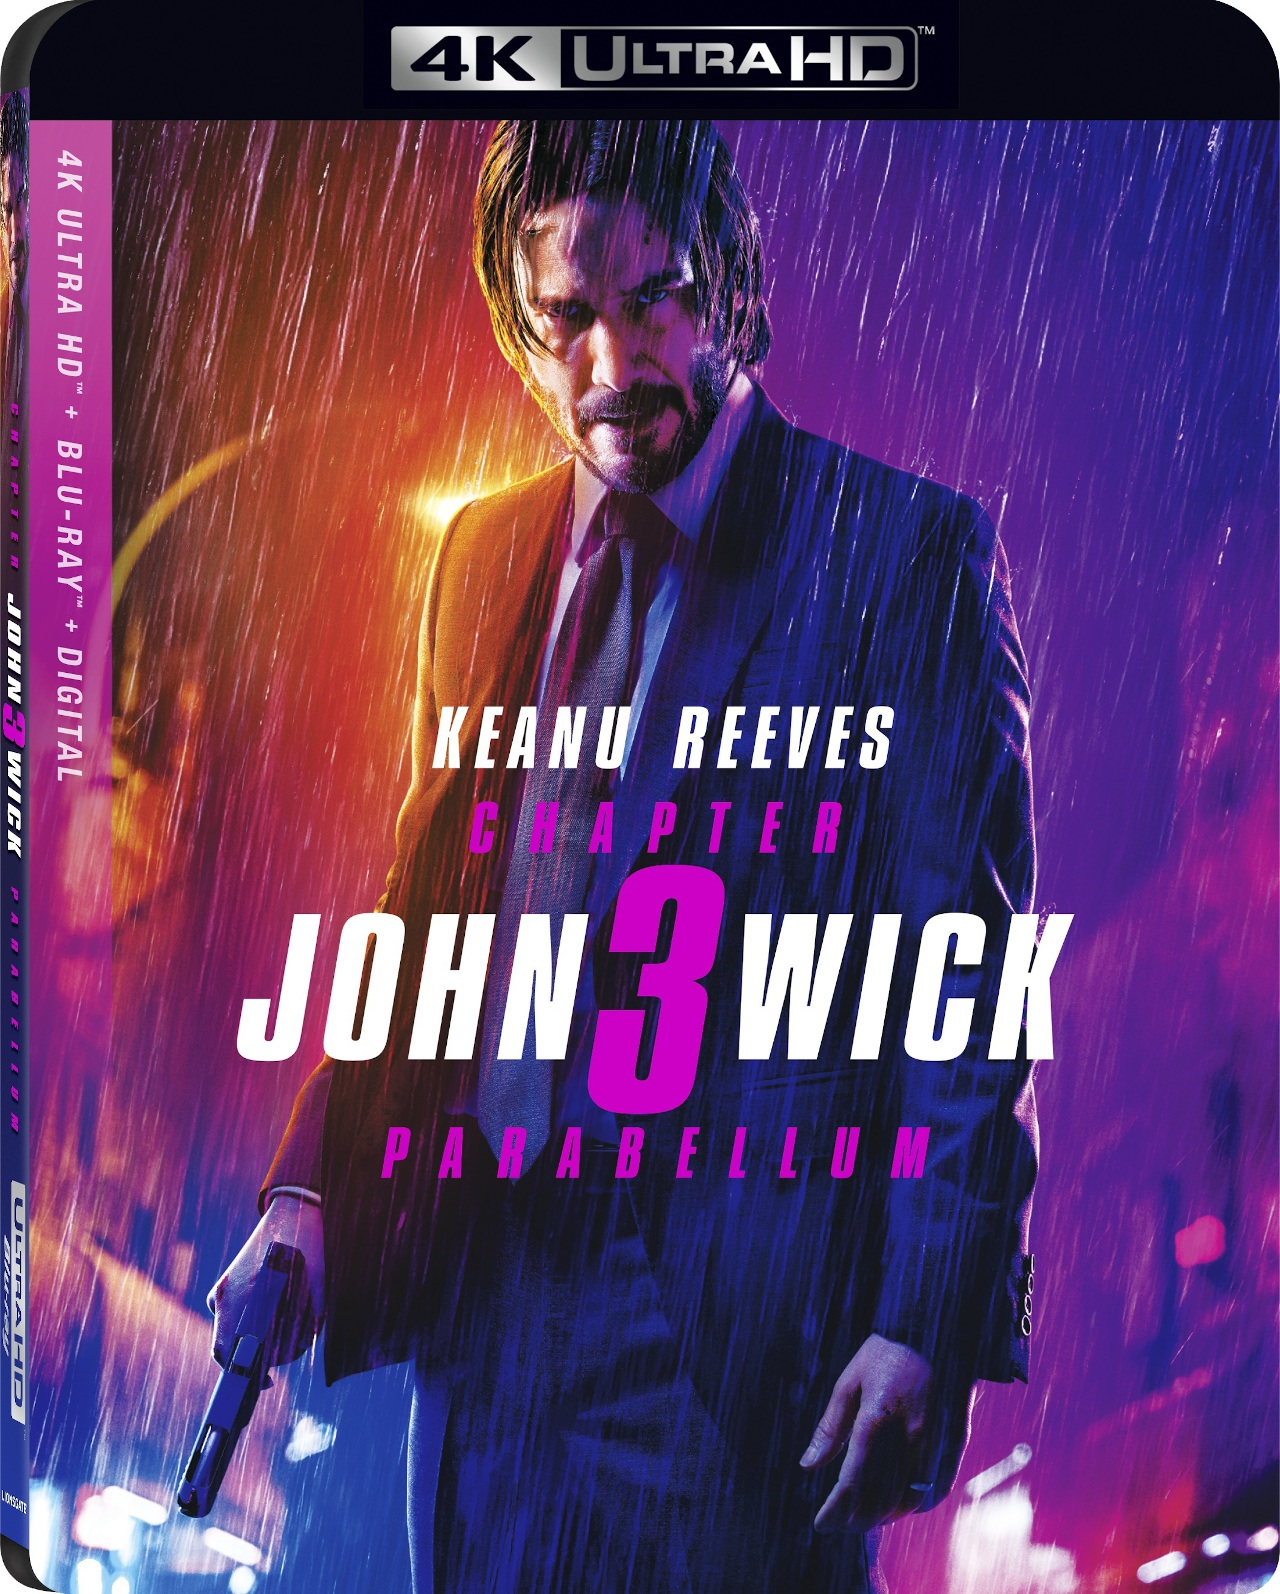 John Wick 3 4K UHD - Best 4K Blu-ray Action Movies